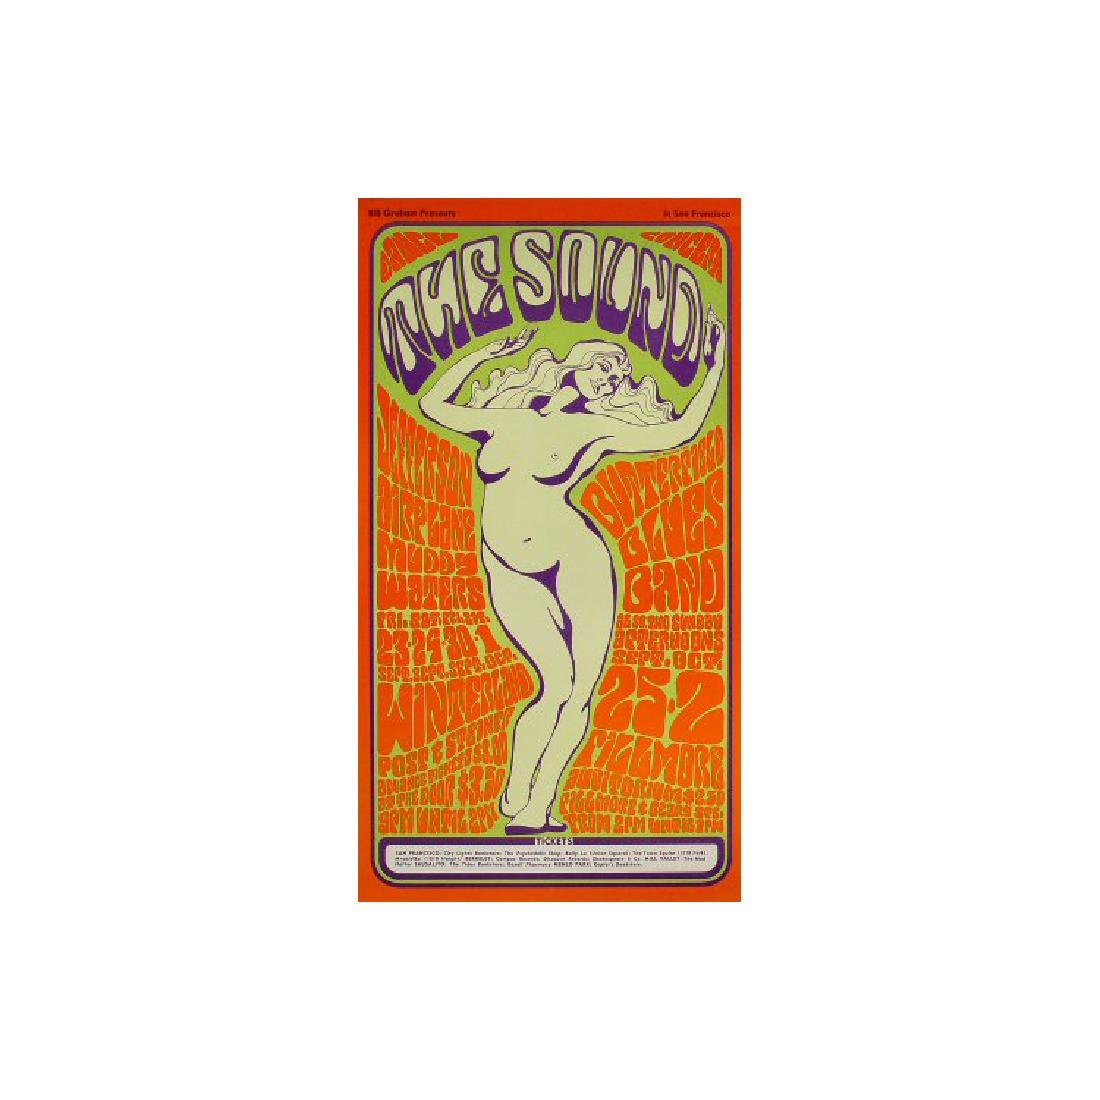 The Sound - Jefferson Airplane - 1966 Concert Poster